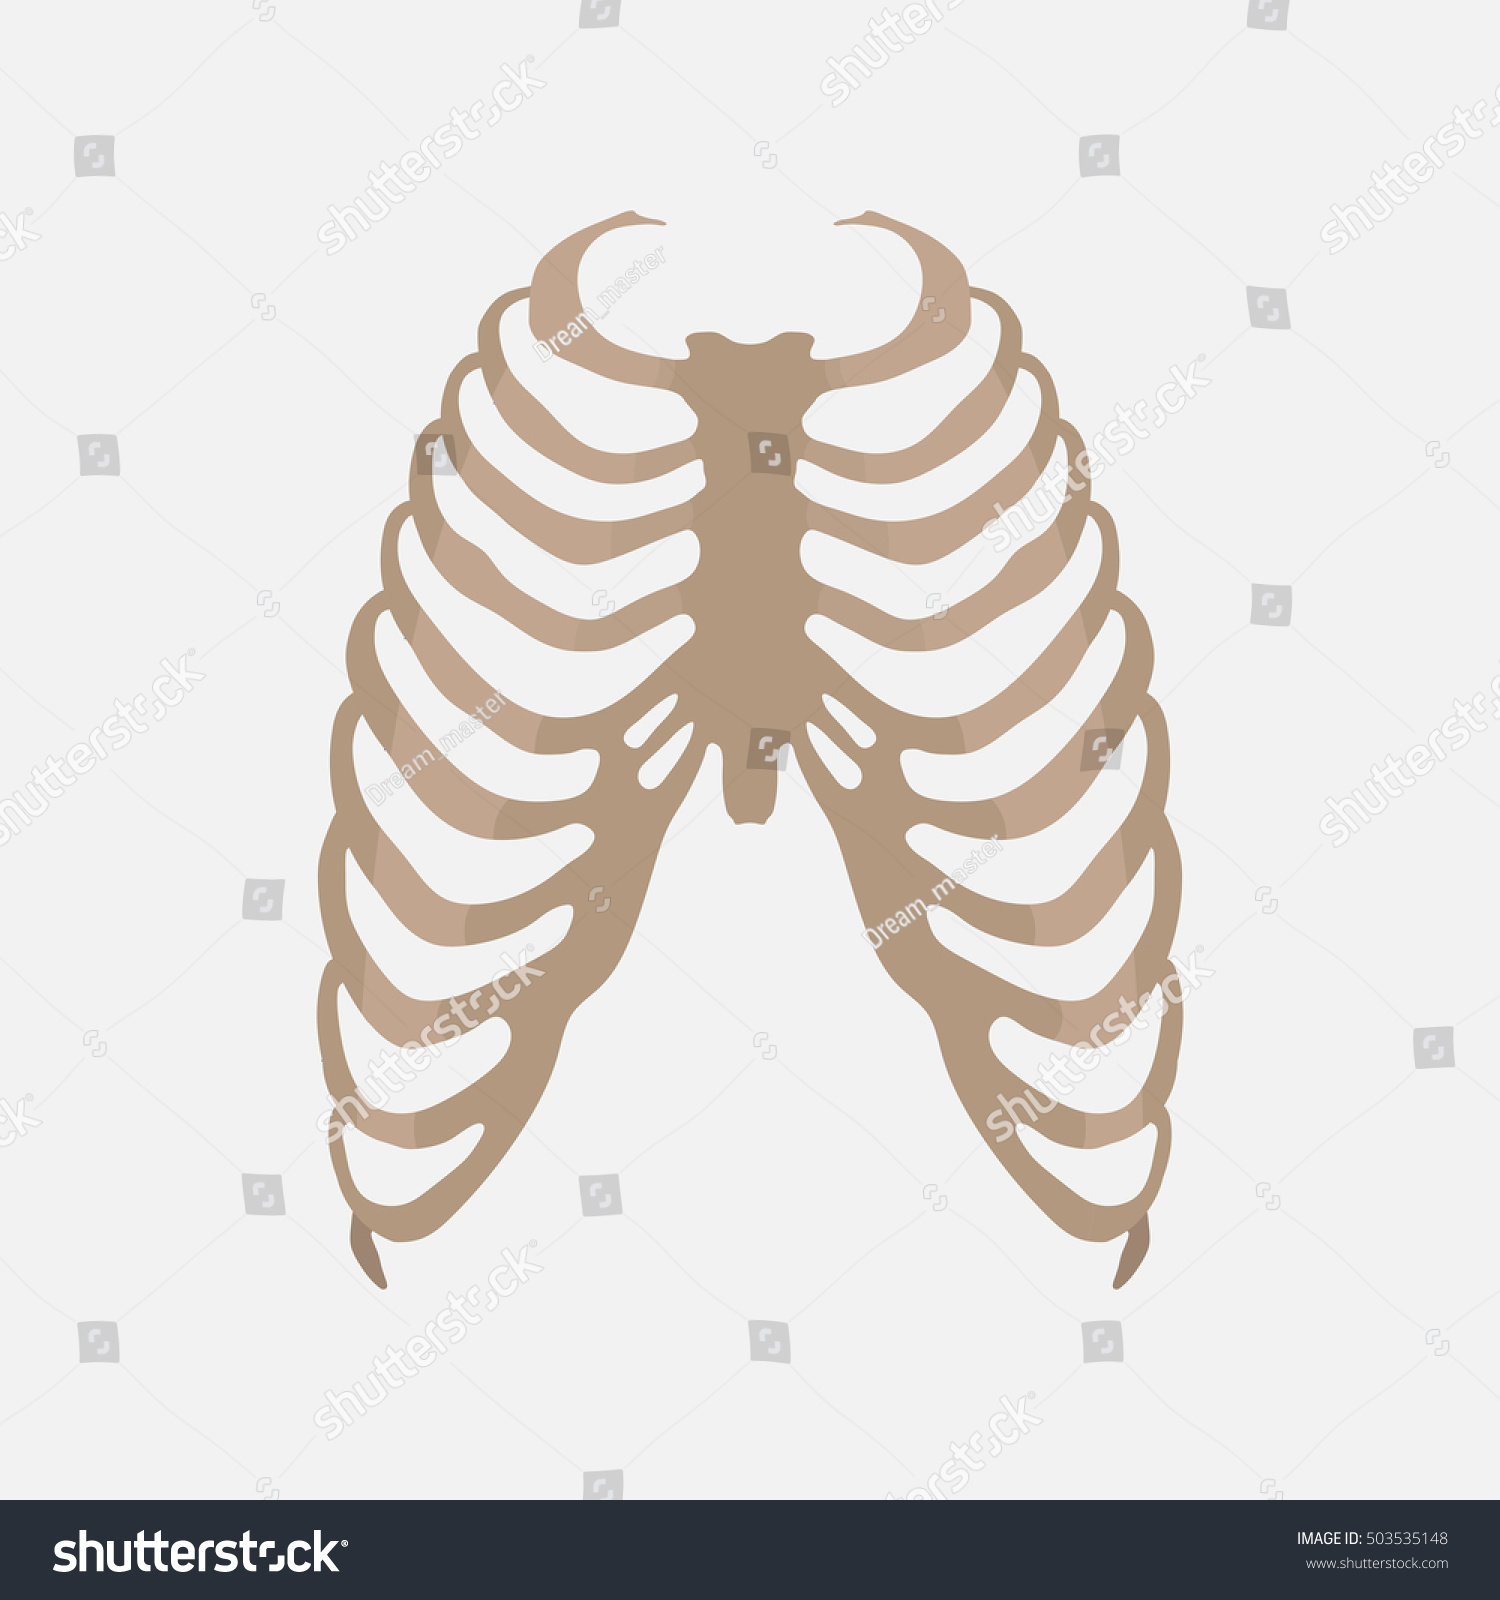 Thorax Human Anatomy Study Body Medical Stock Vector Royalty Free